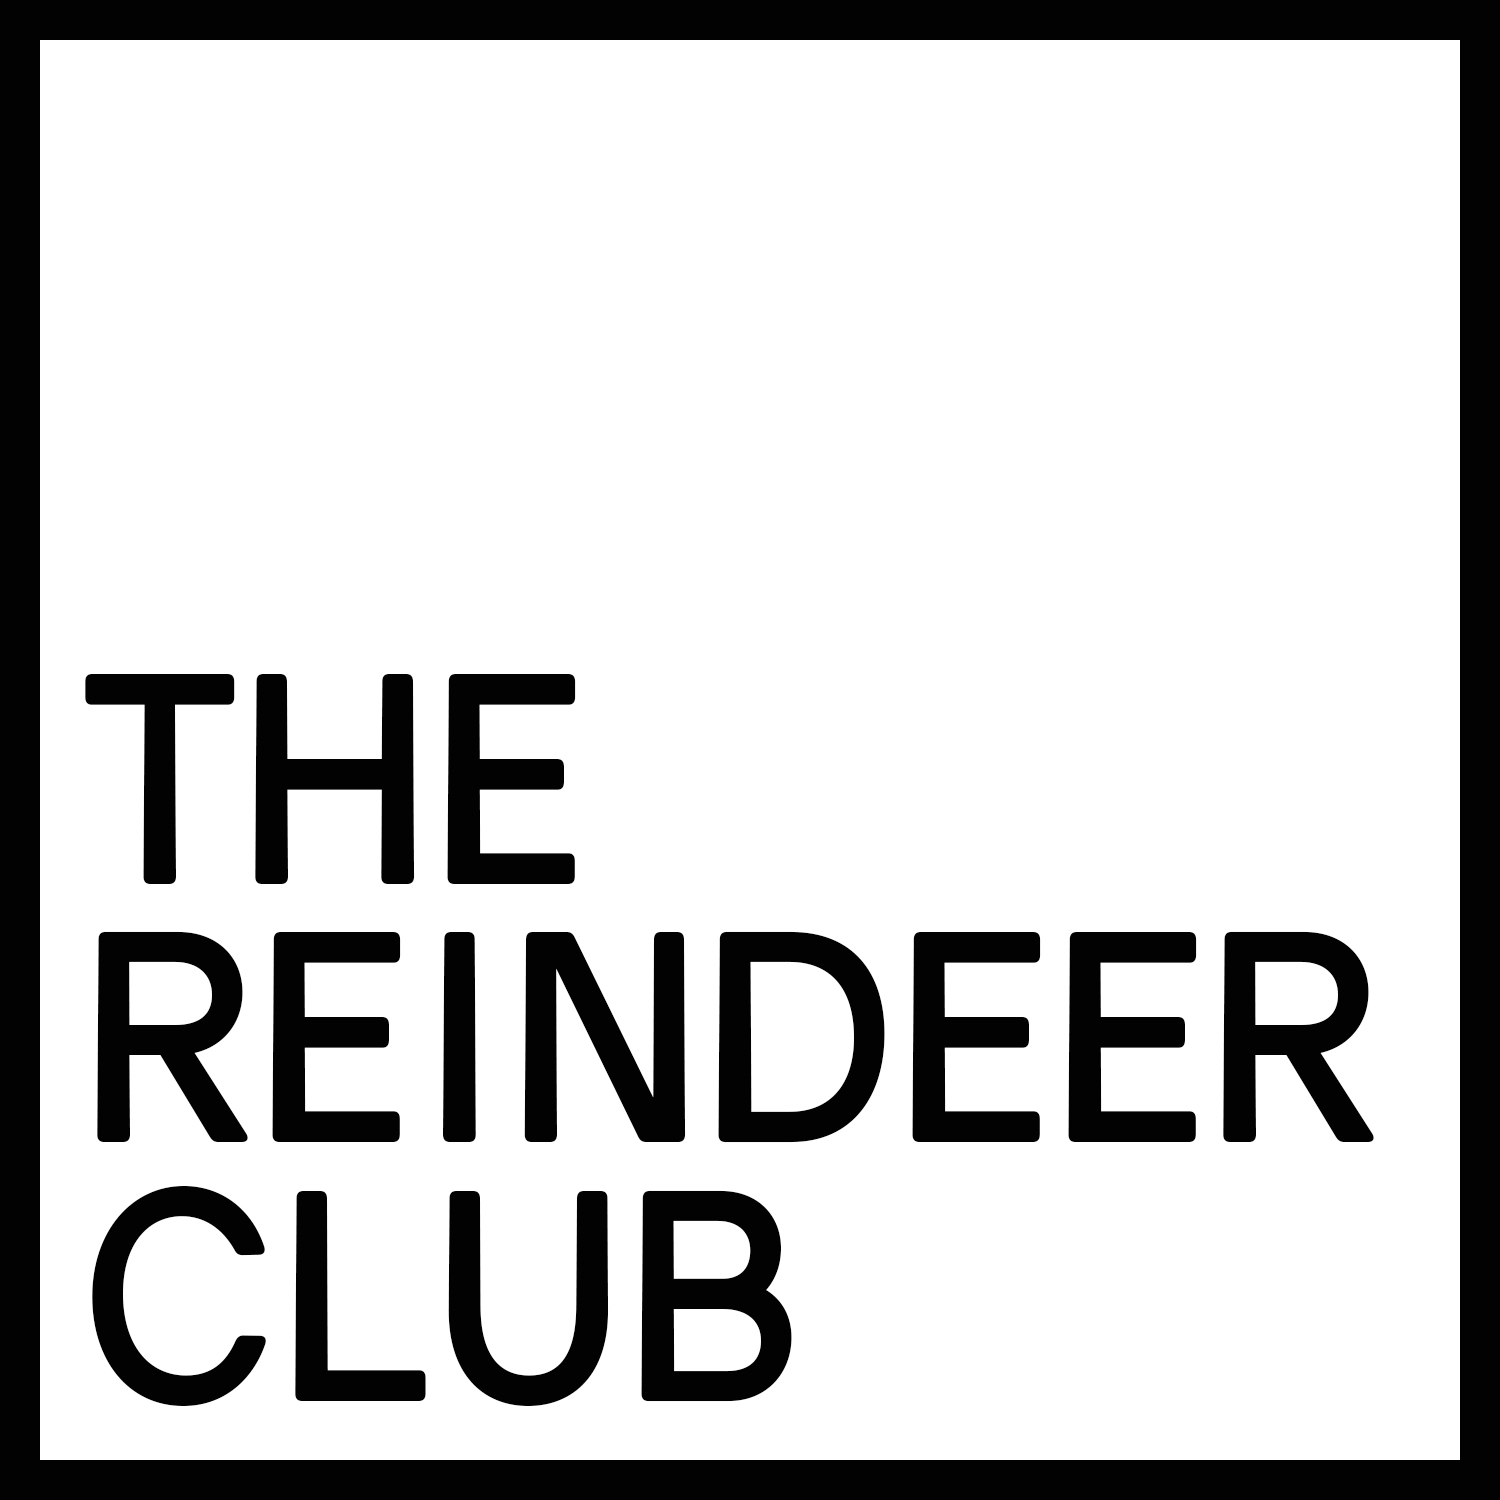 The Reindeer Club